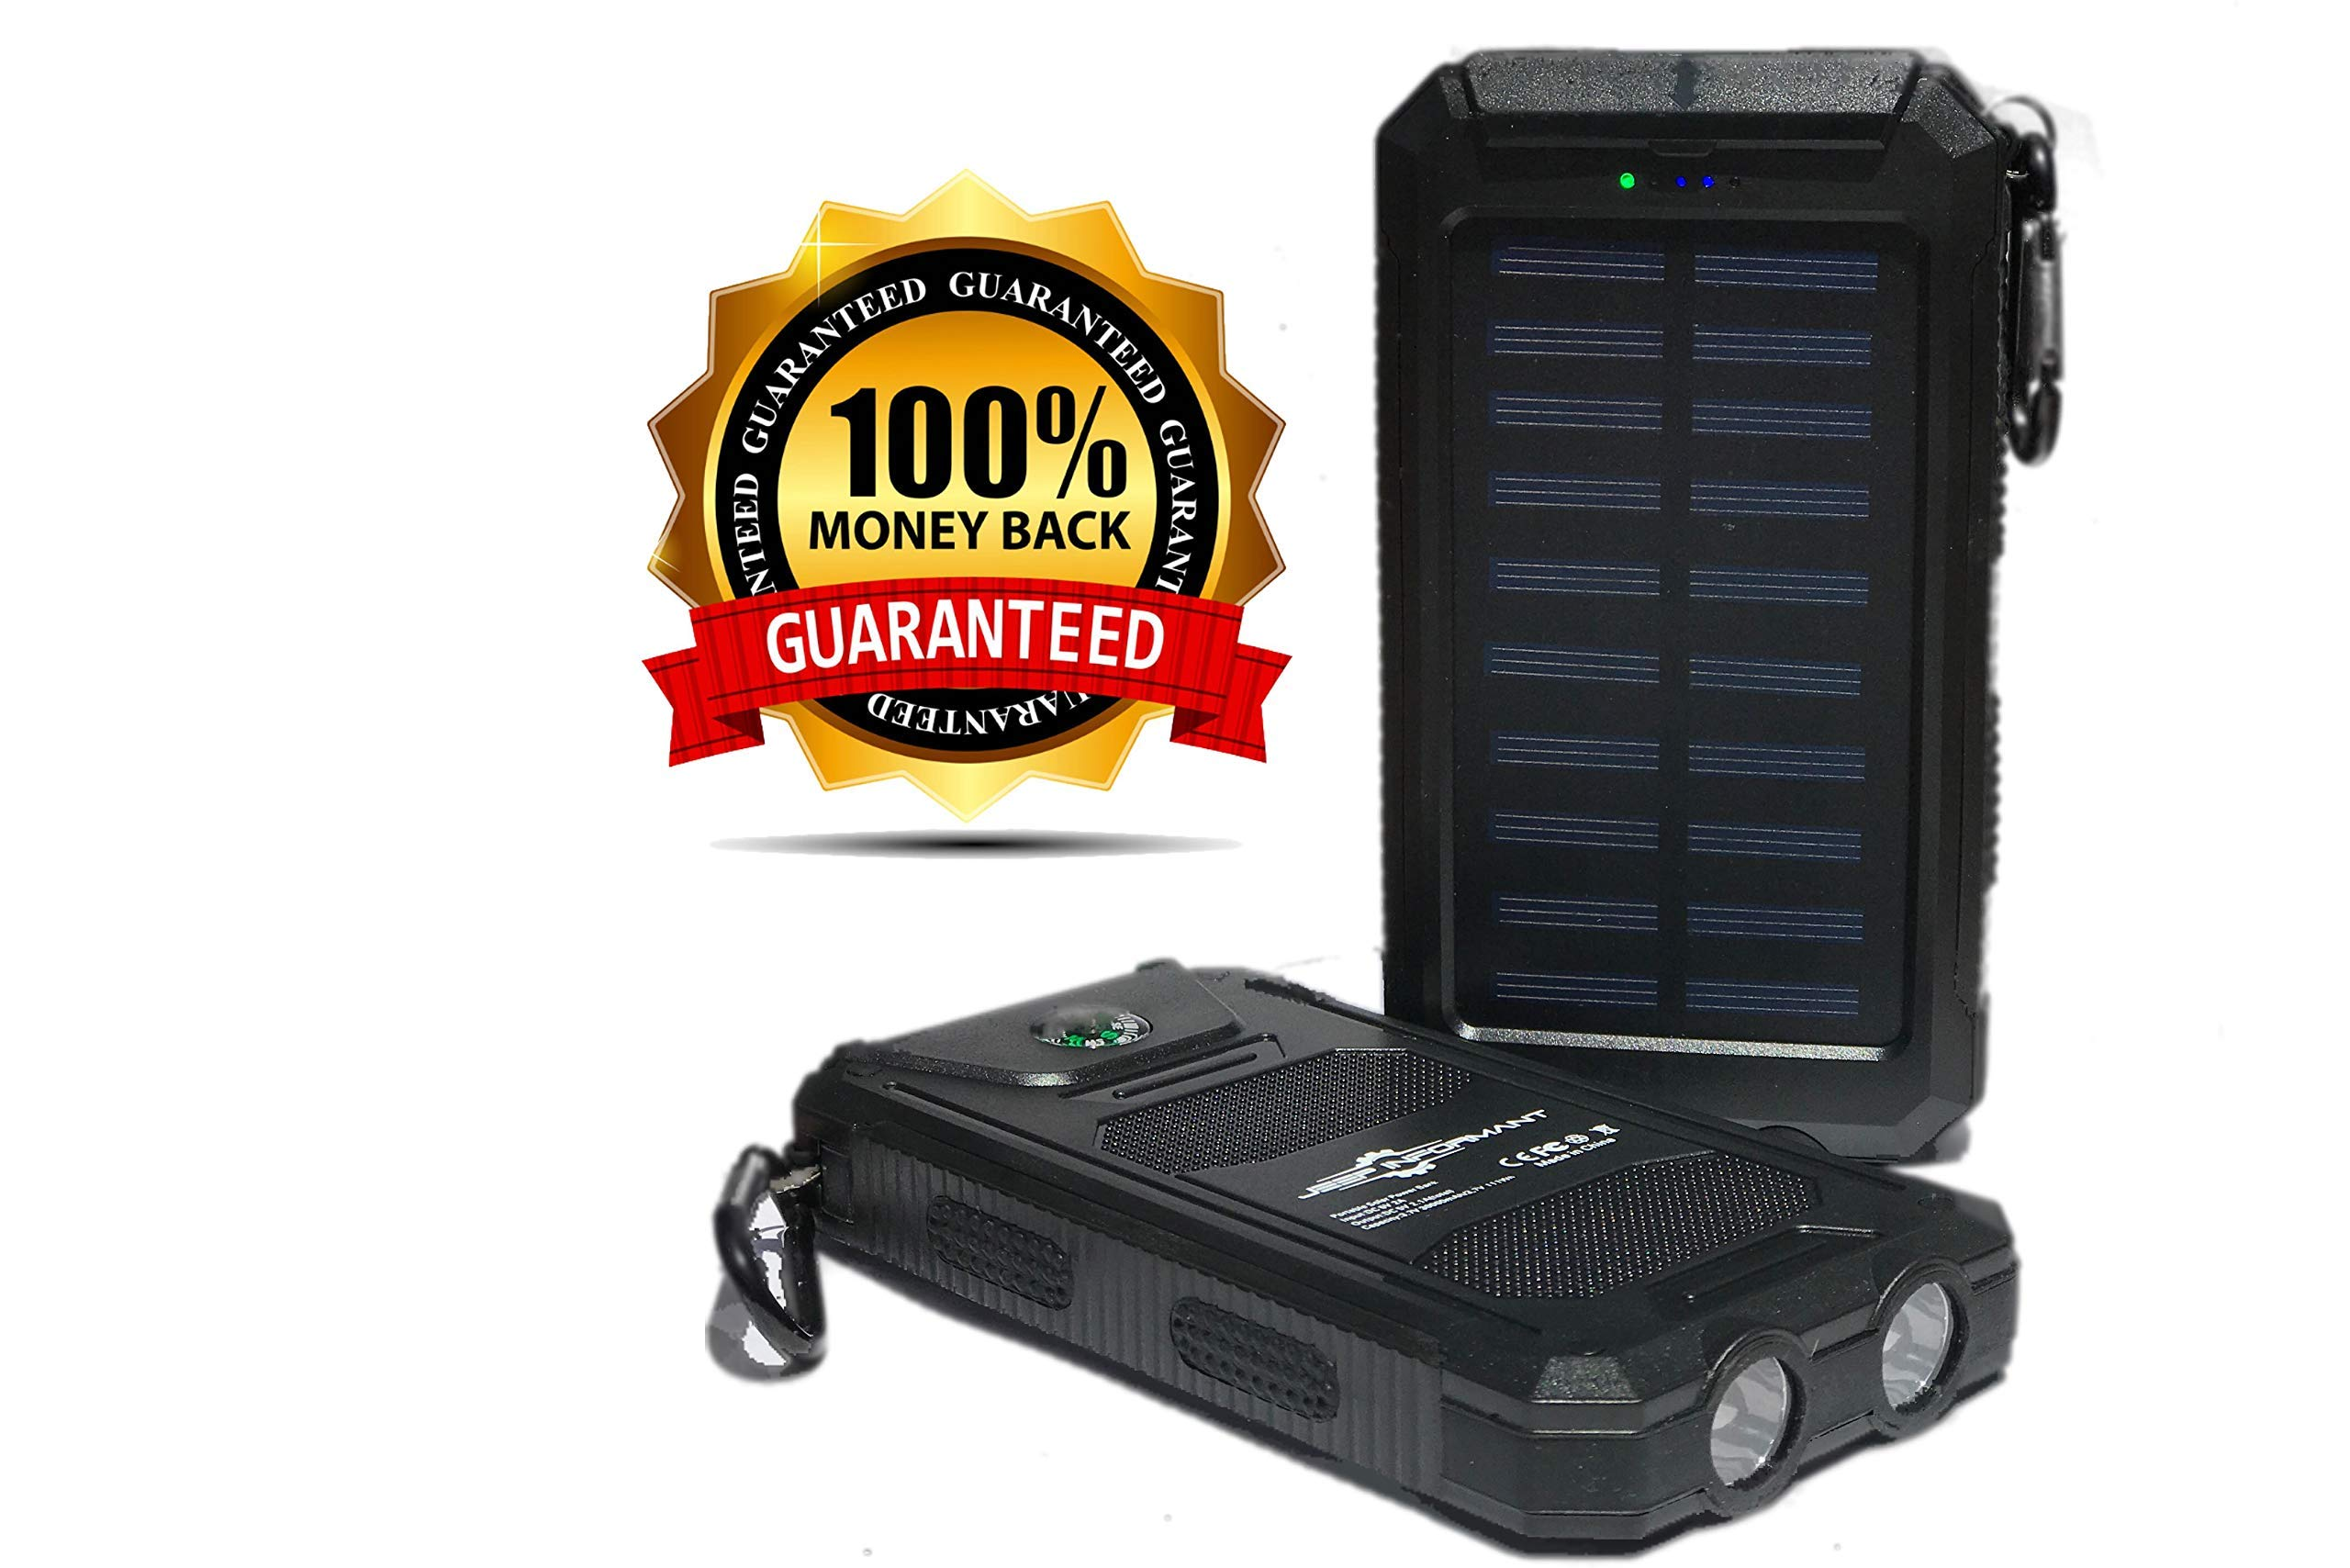 Solar Phone Charger 30000mAh Waterproof with 2 LED Flashlight Portable Battery Pack (Power Bank), 2 USB Ports and Compass Great for Camping Traveling or Emergency Backup